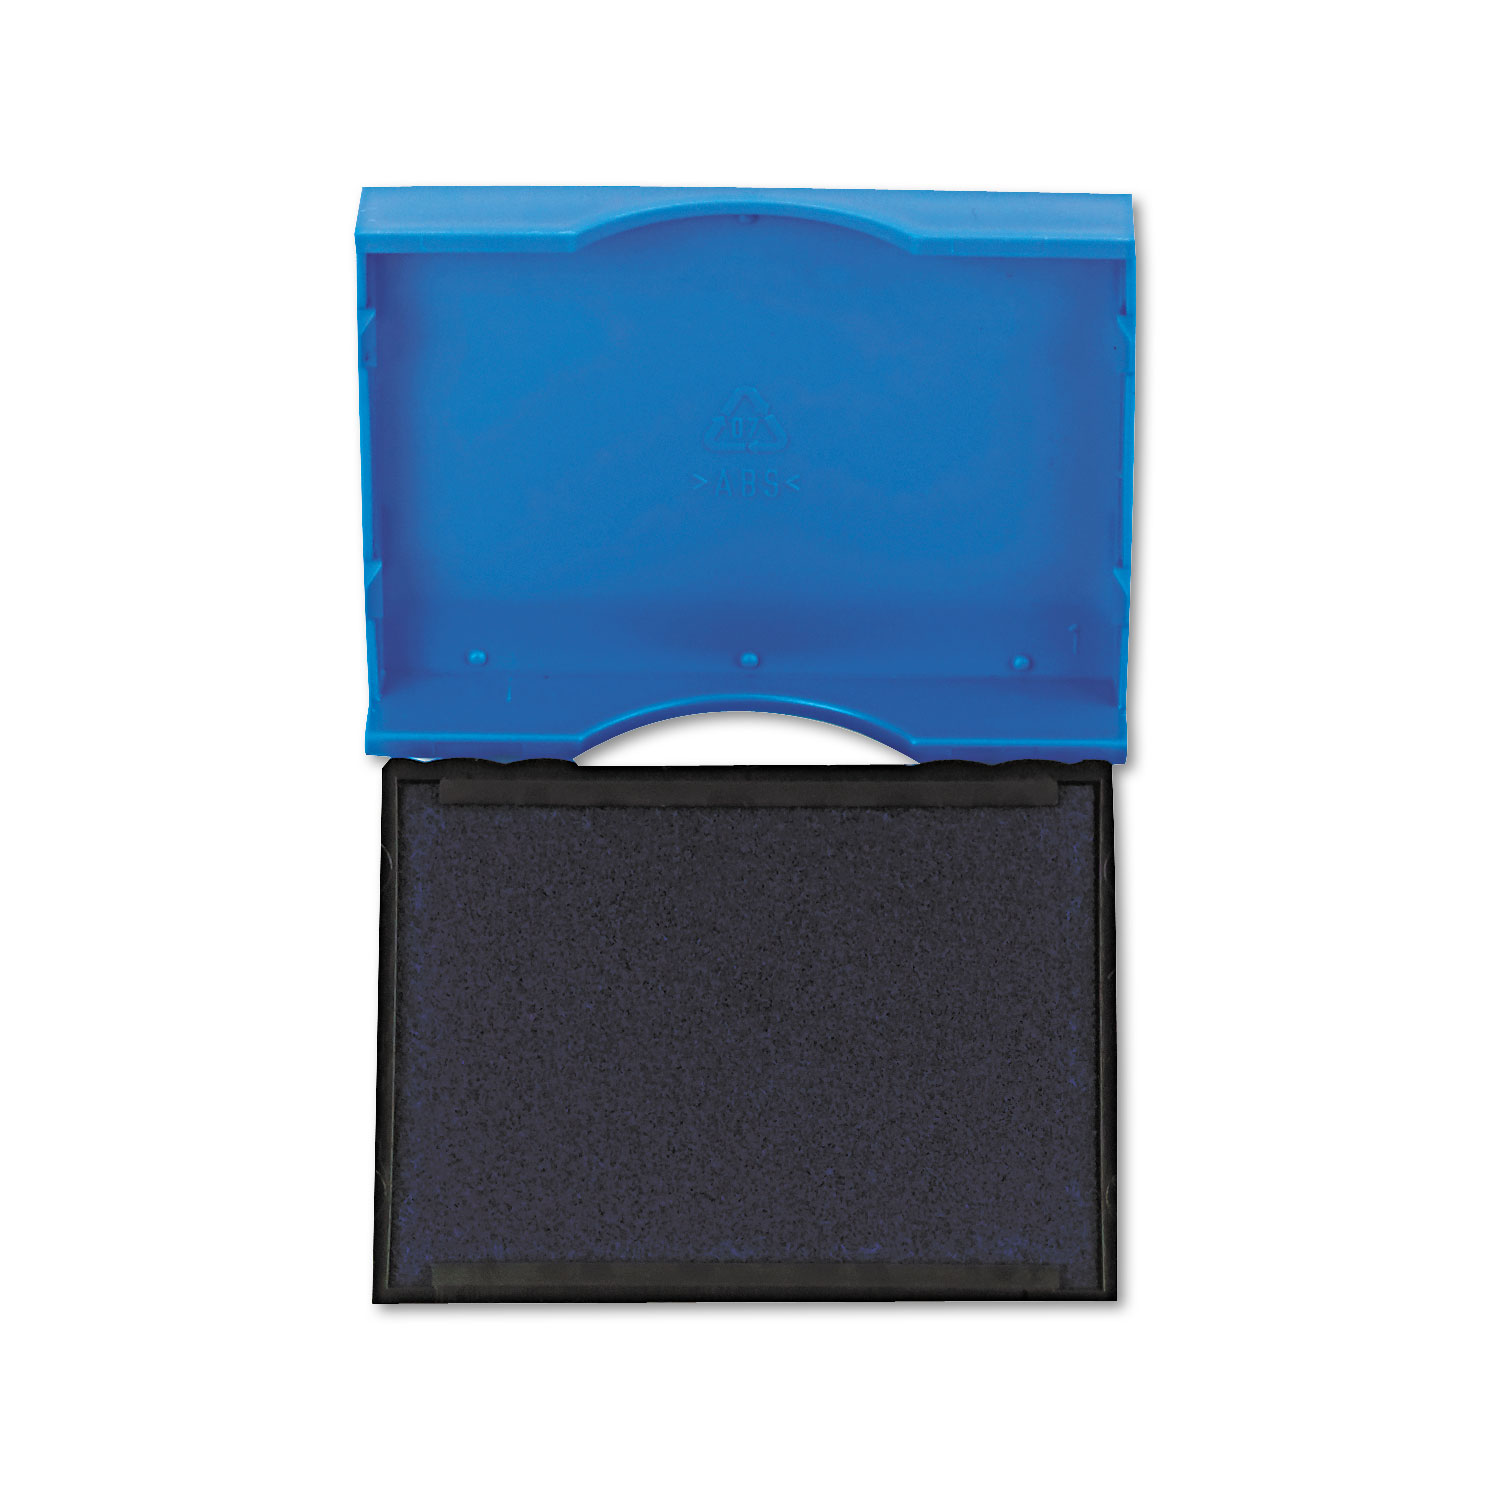 Trodat T4750 Stamp Replacement Pad, 1 x 1 5 8, Blue by U.S. STAMP & SIGN